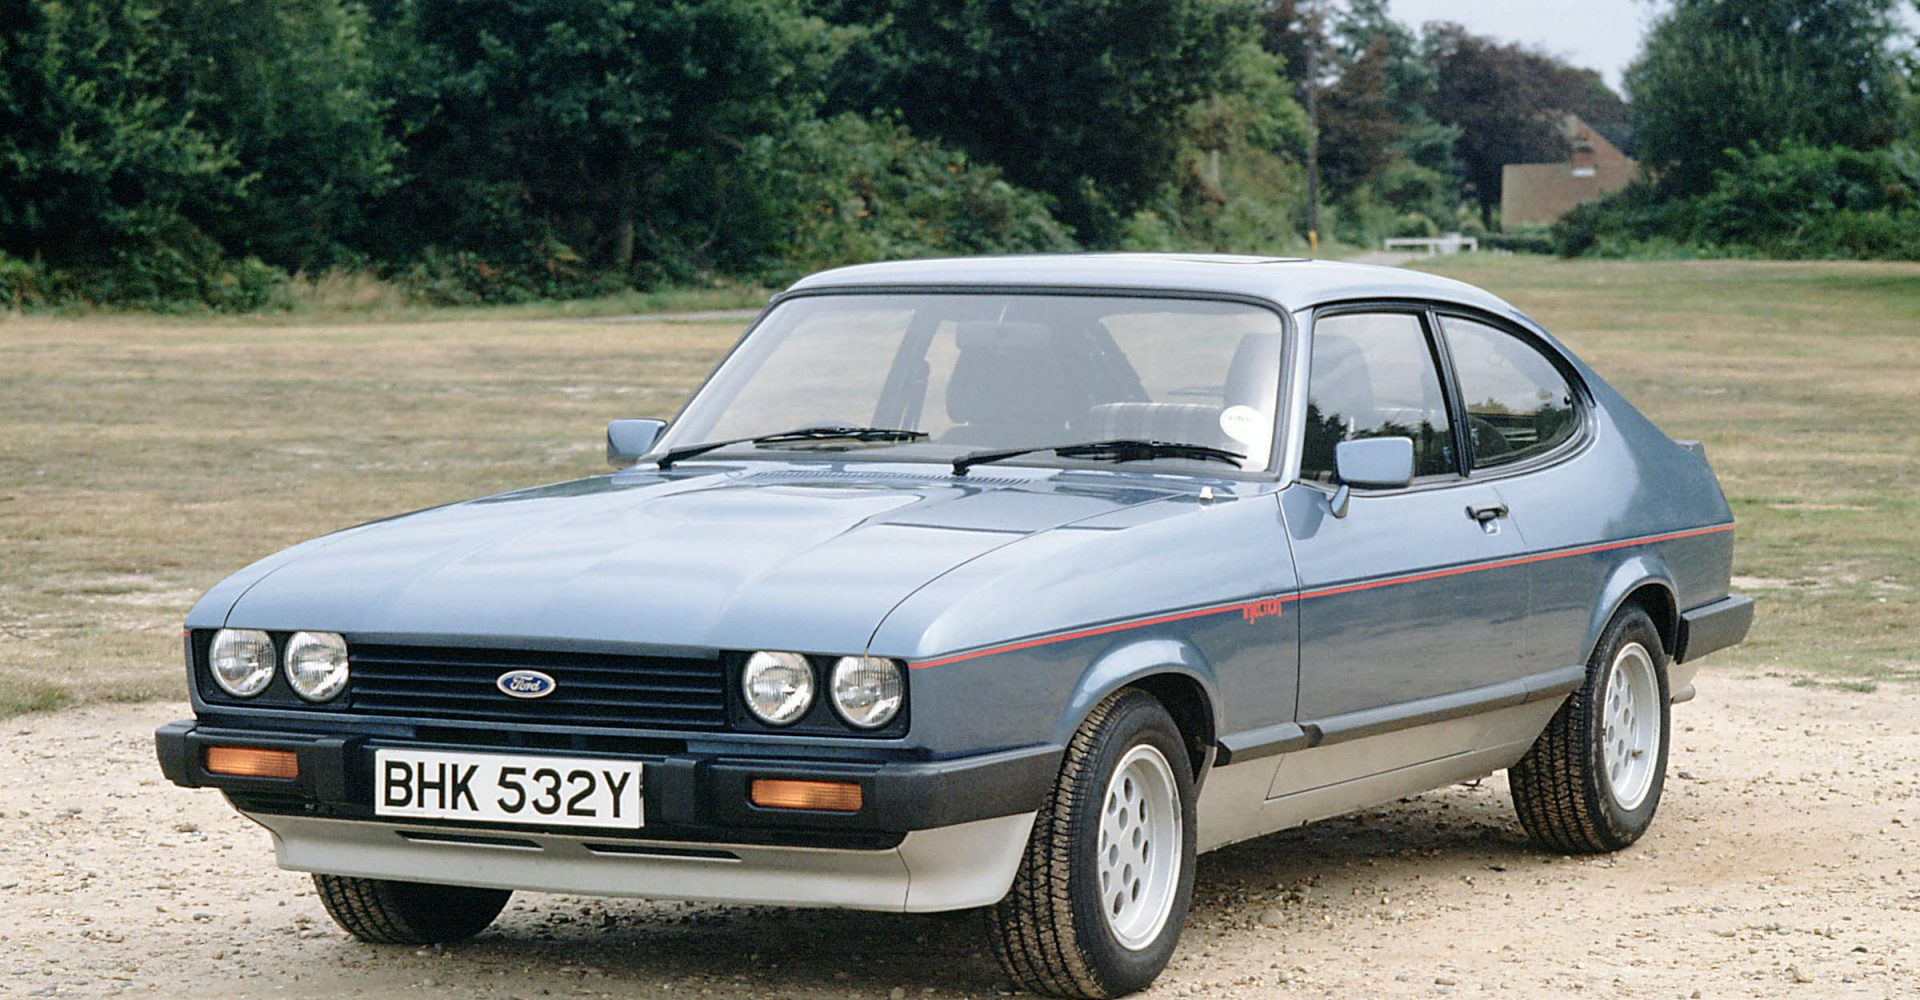 Ford Capri tops list of most searched for classic cars